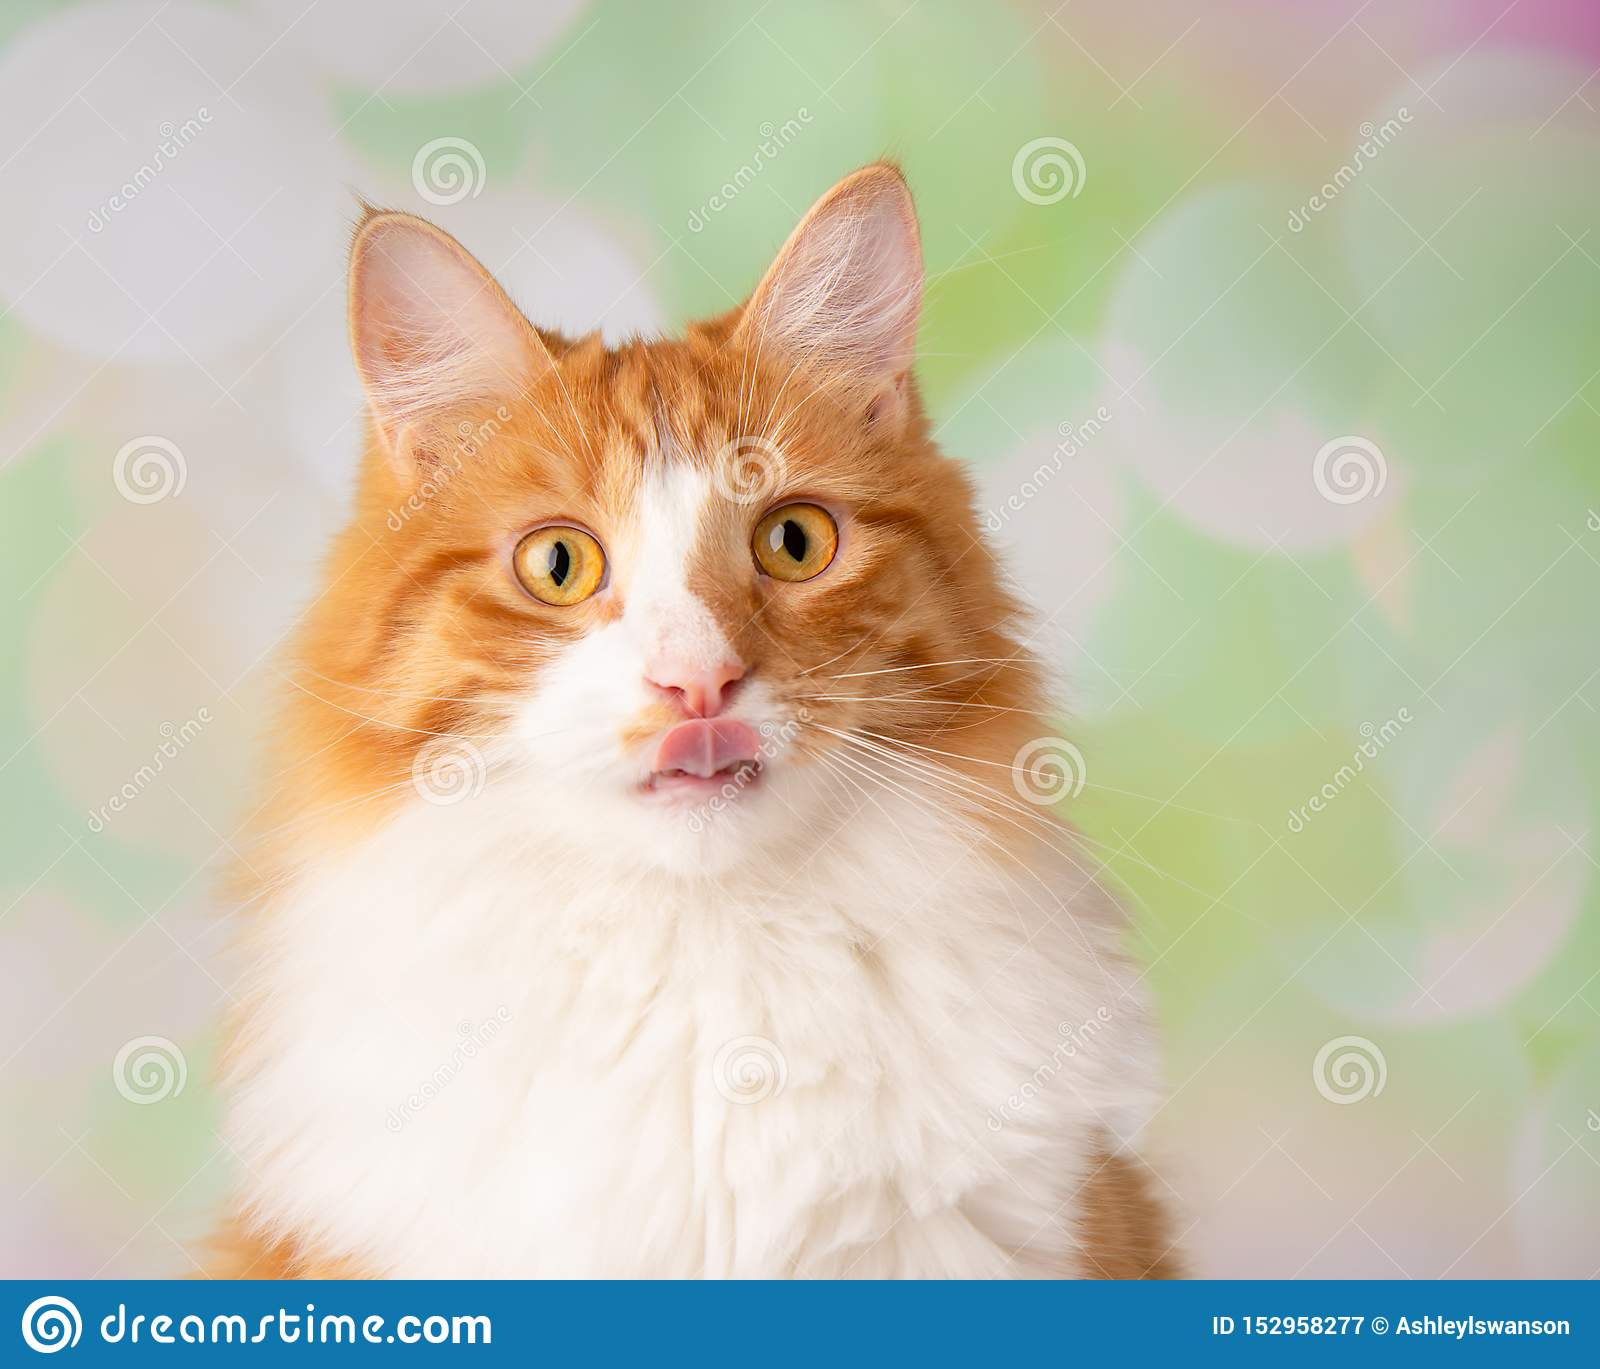 Orange And White Cat Close Up Face With Tongue Stick Out ...